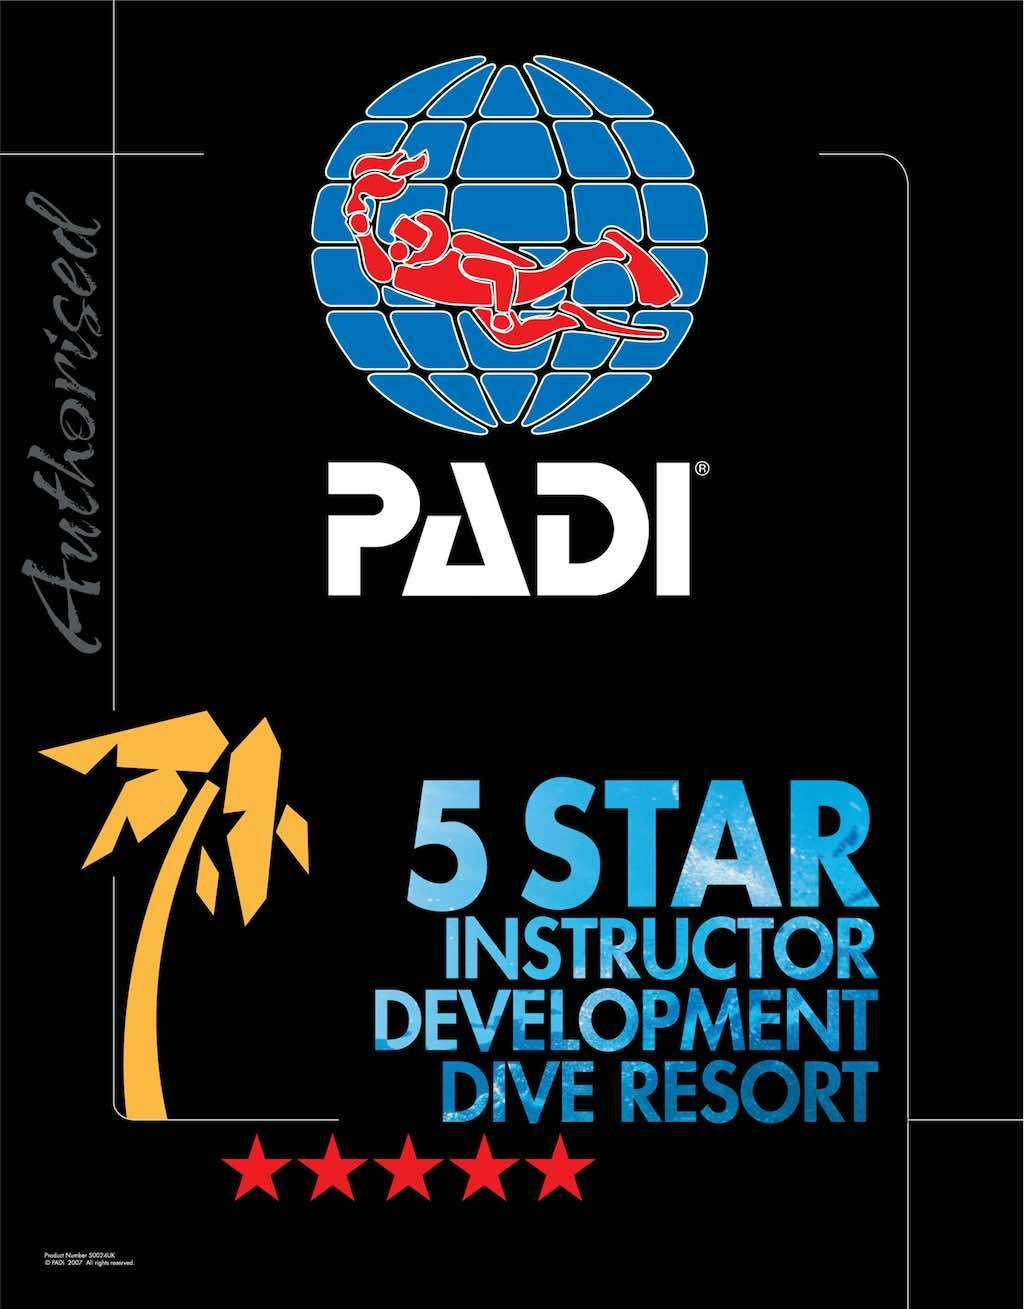 Warnakali PADI 5 star Instructor Development Dive Resort Nusa Penida Bali